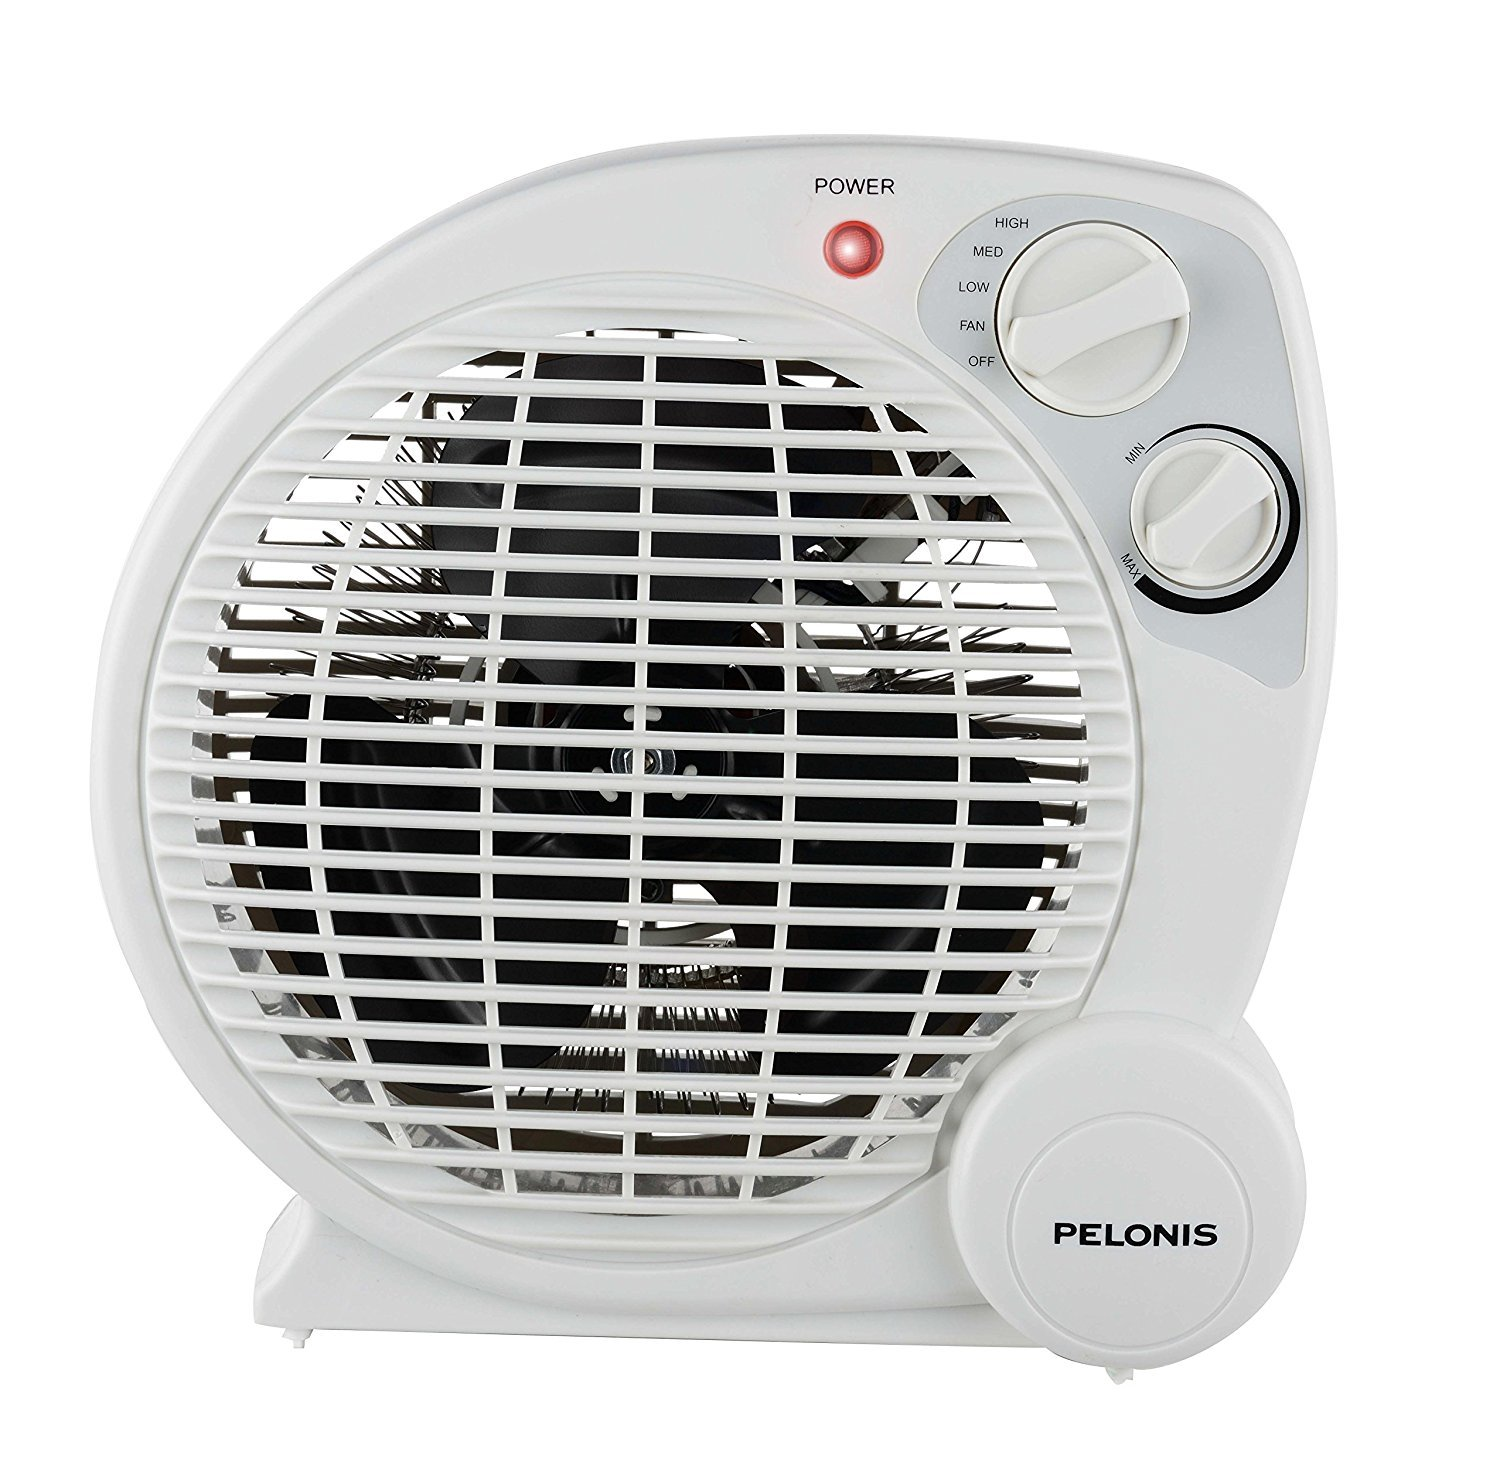 Pelonis Hb 211t Portable Space Heater Model With Auto Fan For Automatic Temperature Control Safety Shutoff Energy Efficient 3 Heat Settings 600 W 900